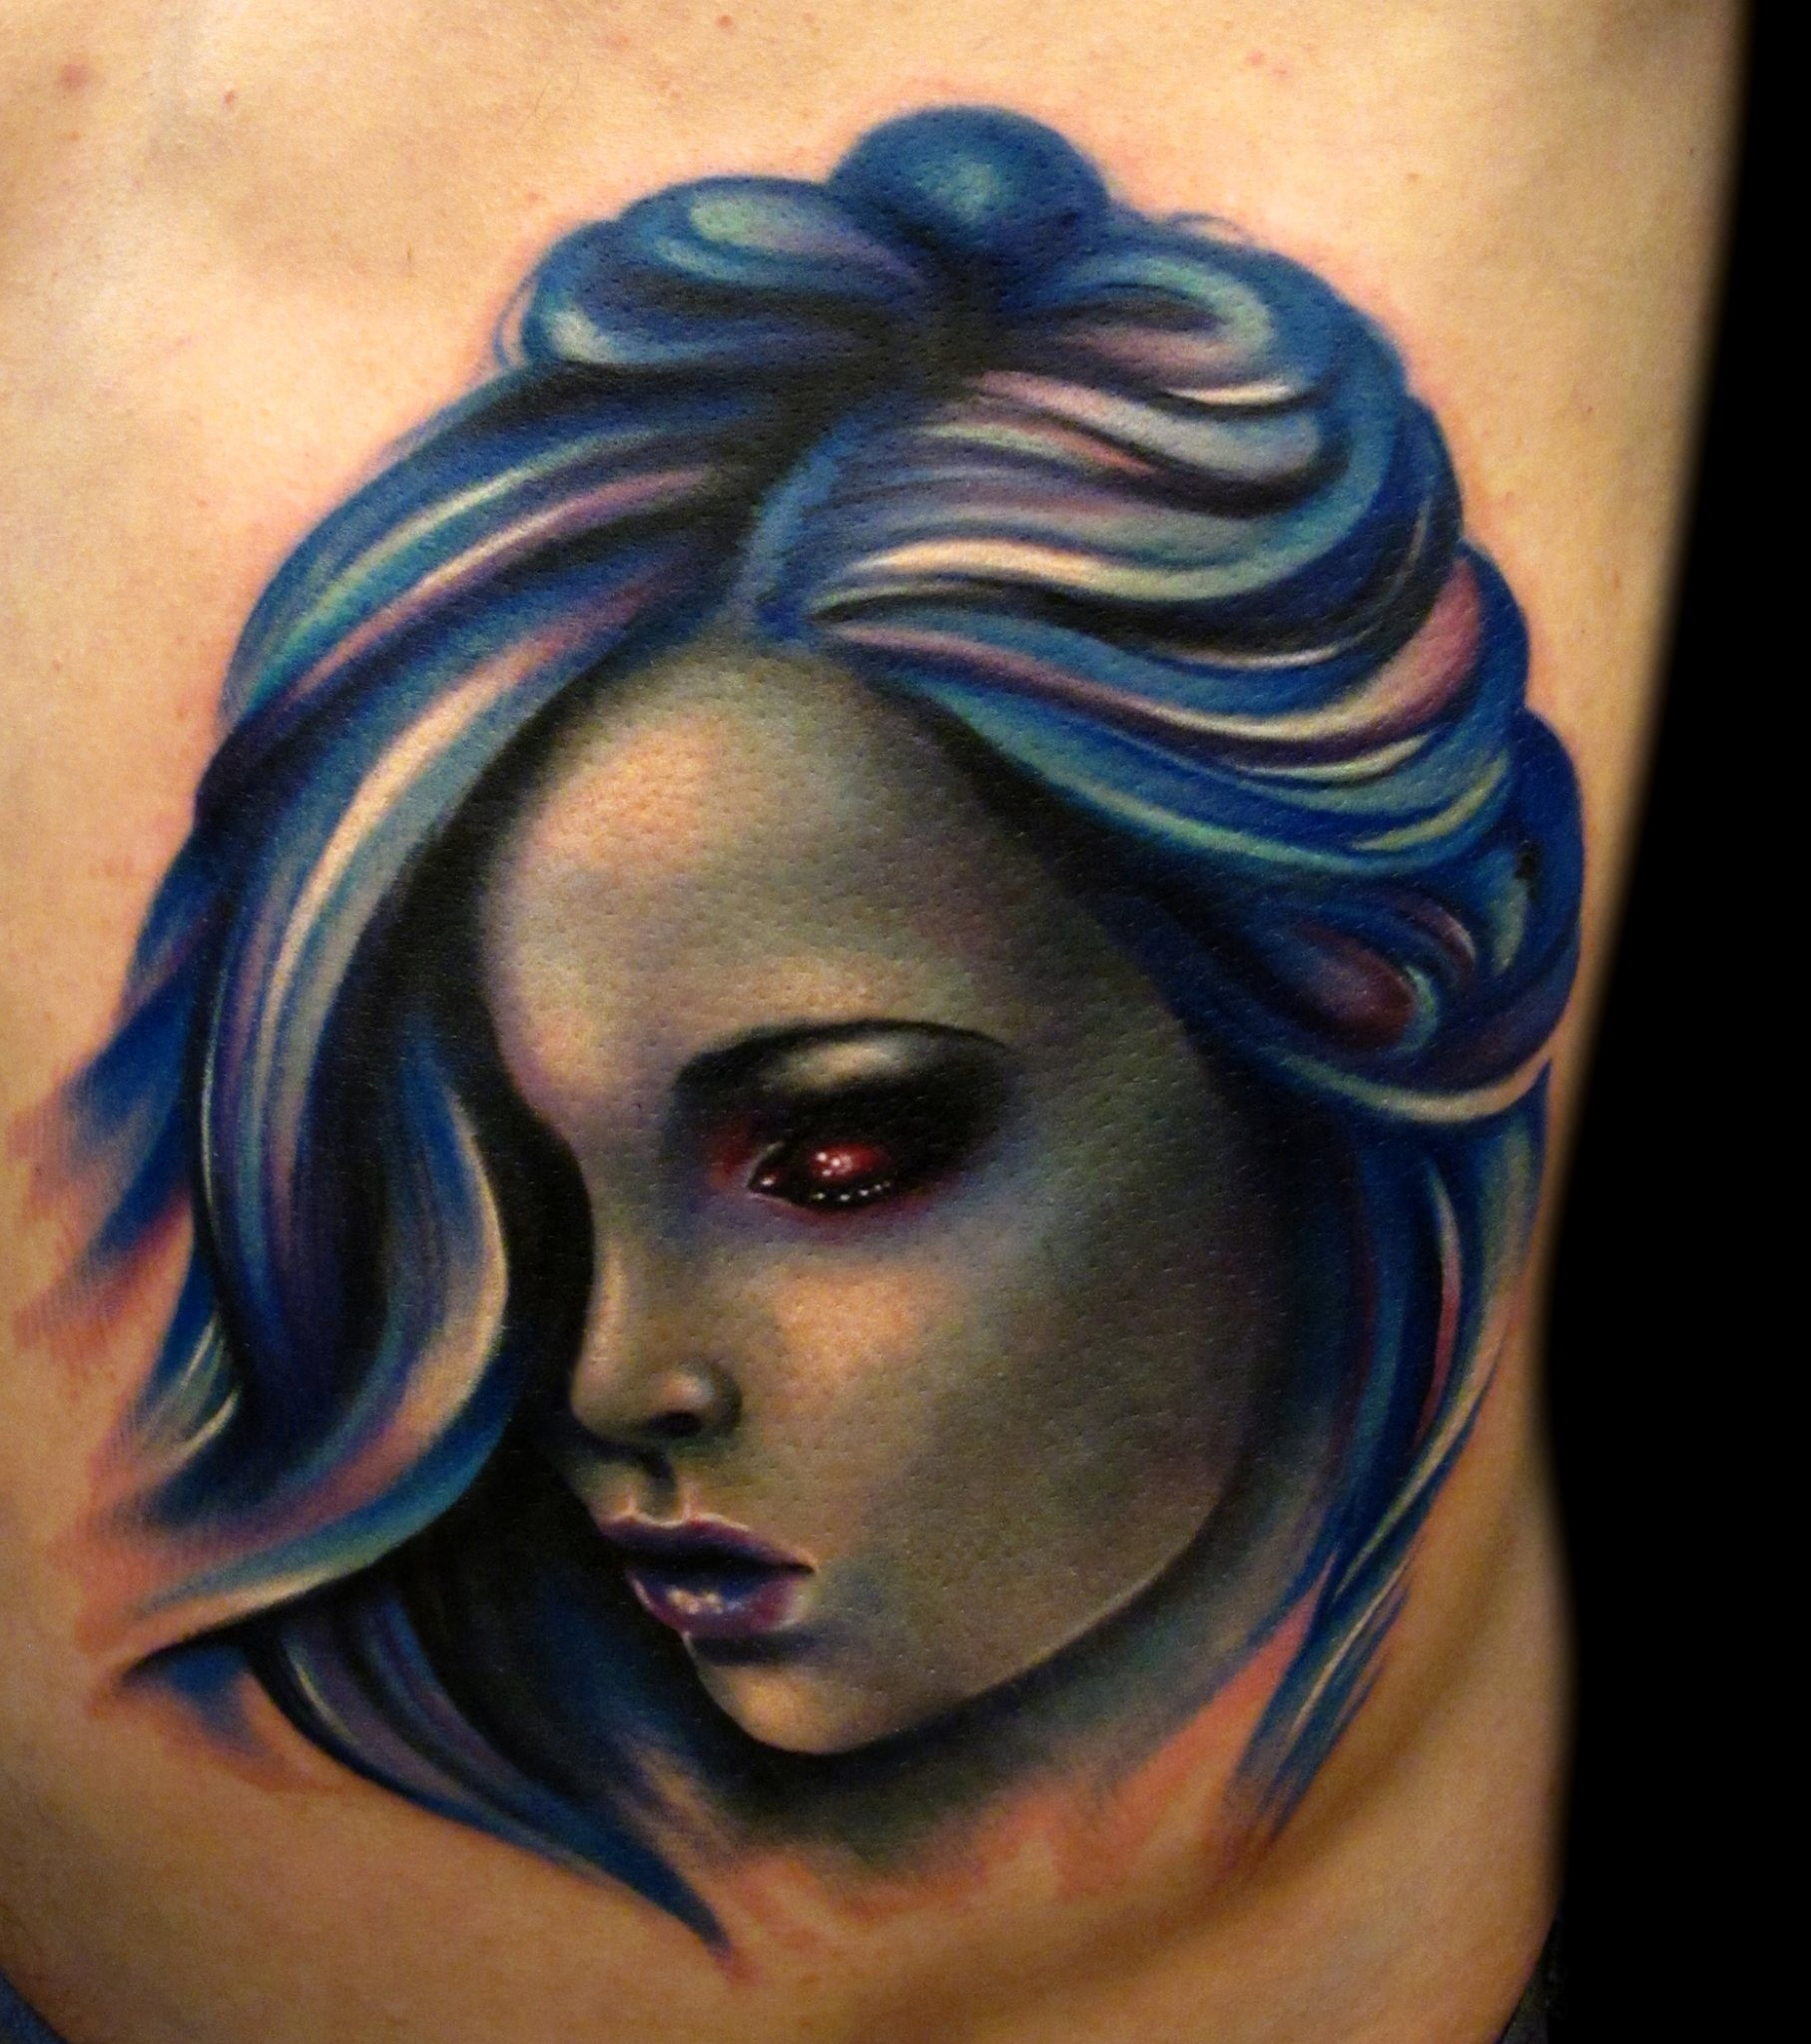 Portrait Tattoos Blue Hair Alternative Girl Liz Cook Dallas Texas.jpg